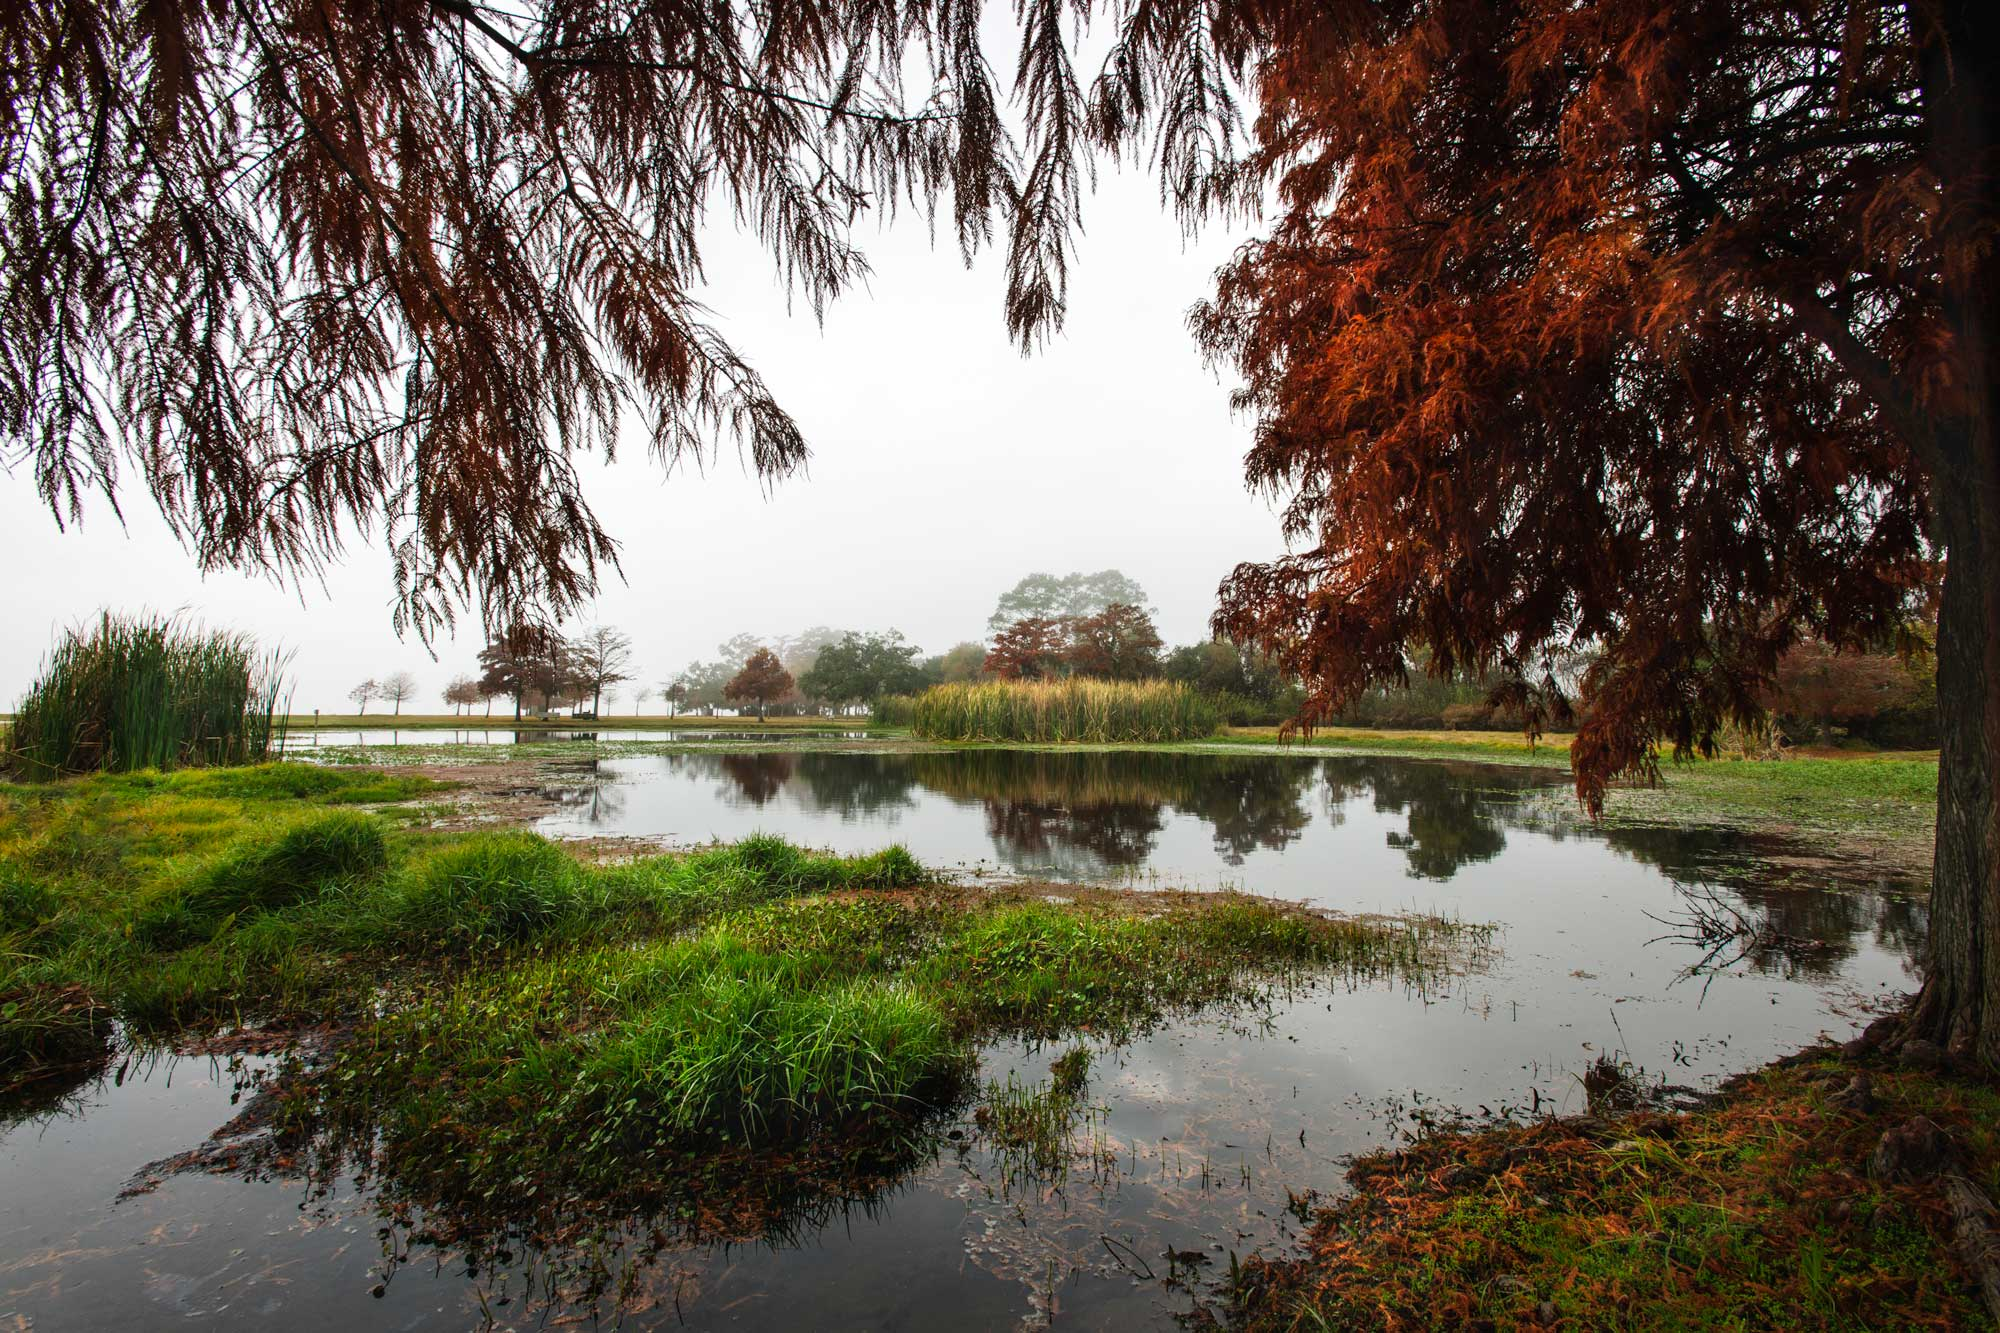 Pond and trees